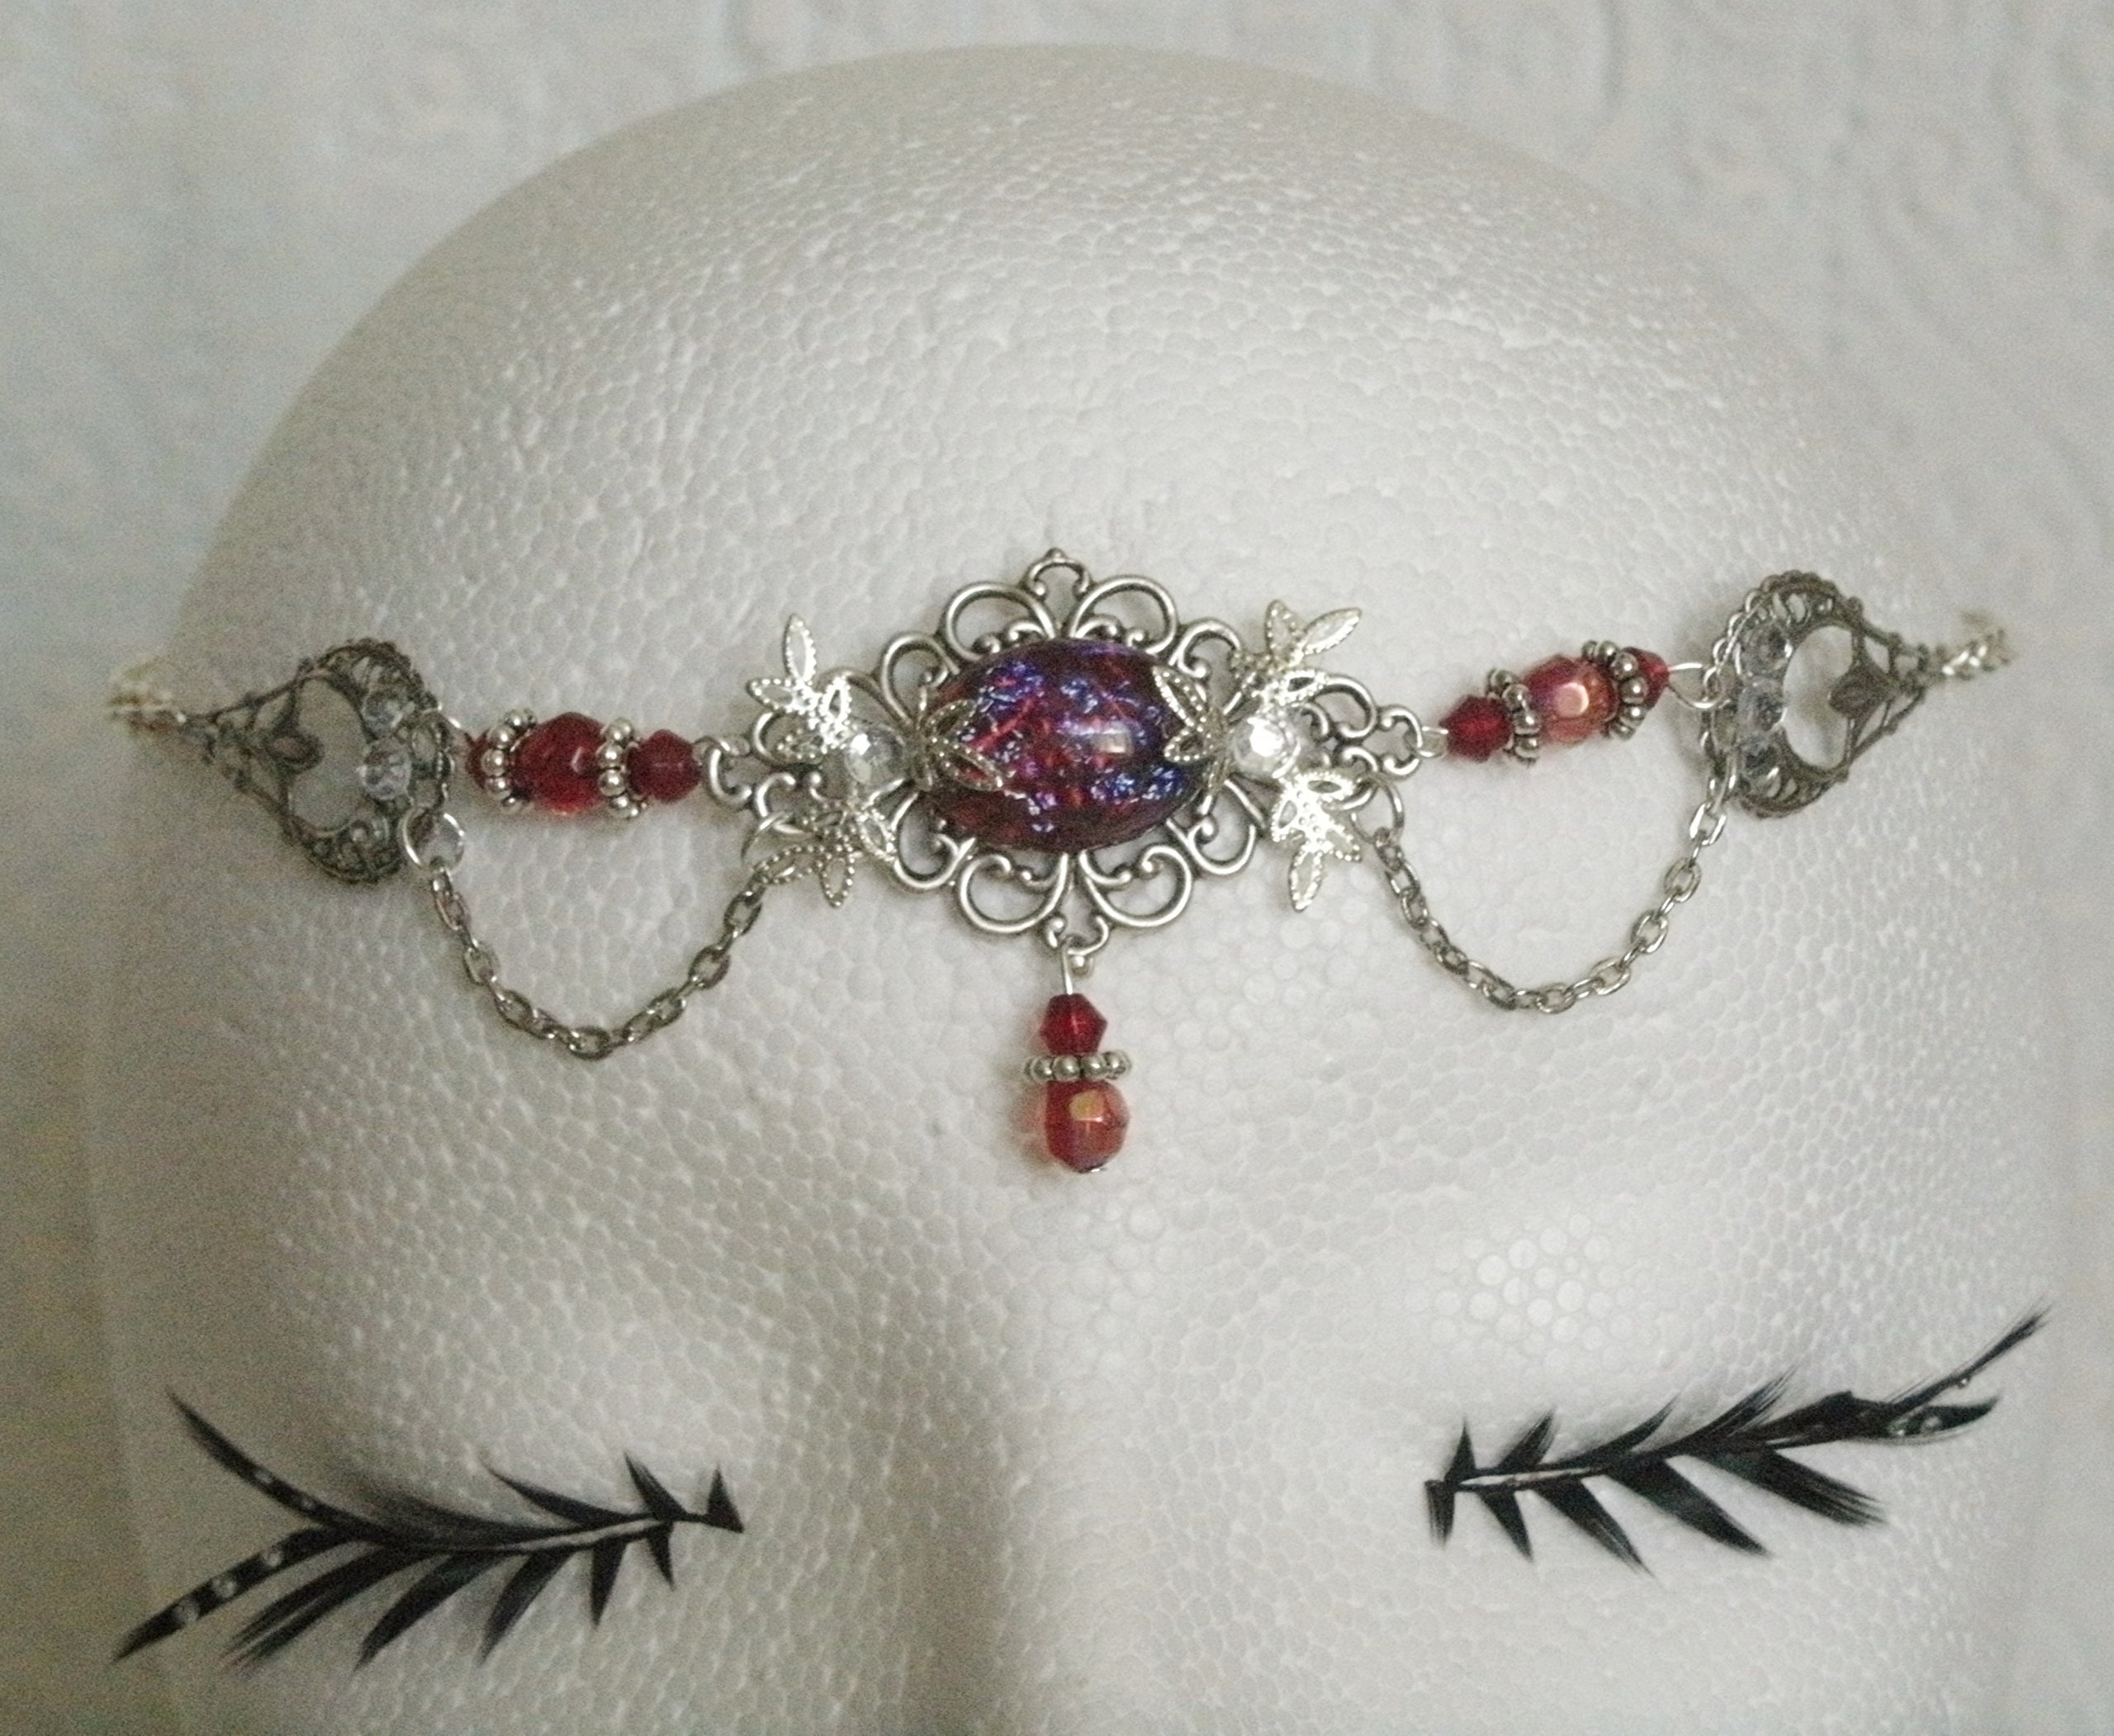 Dragons Breath Fire Opal Circlet, handmade jewelry renaissance medieval victorian edwardian art nouveau art deco tudor headpiece